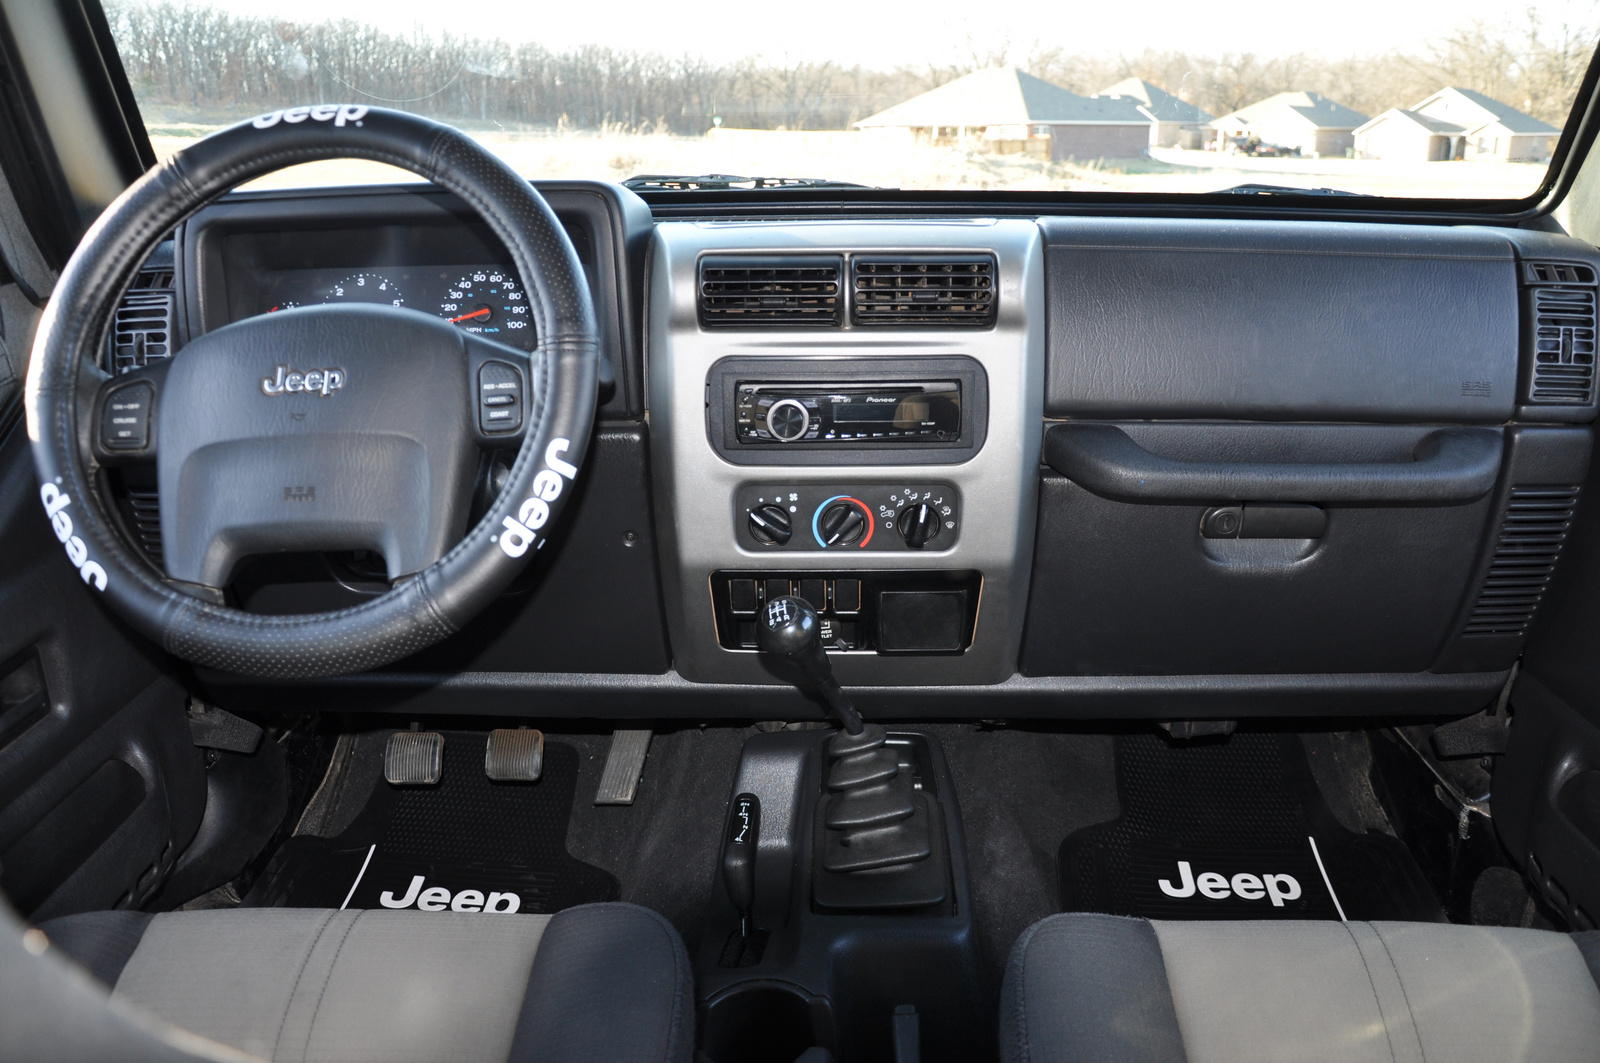 2004 jeep wrangler interior pictures cargurus. Cars Review. Best American Auto & Cars Review